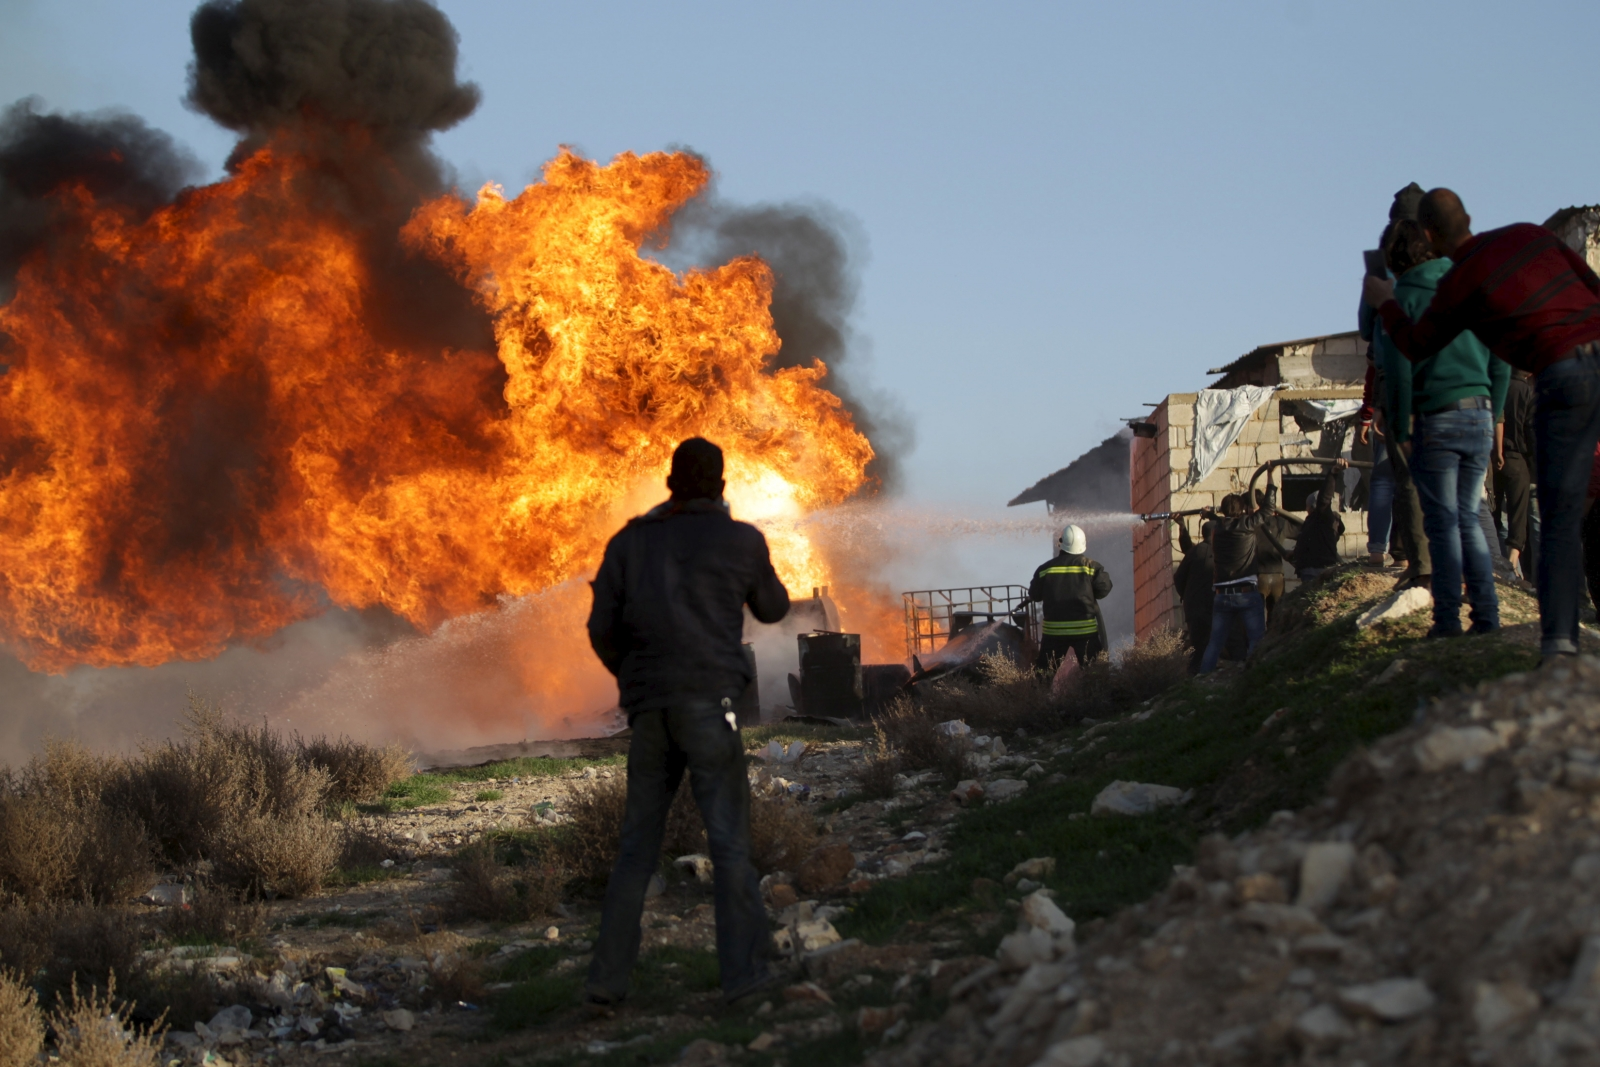 A fire in Idlib province